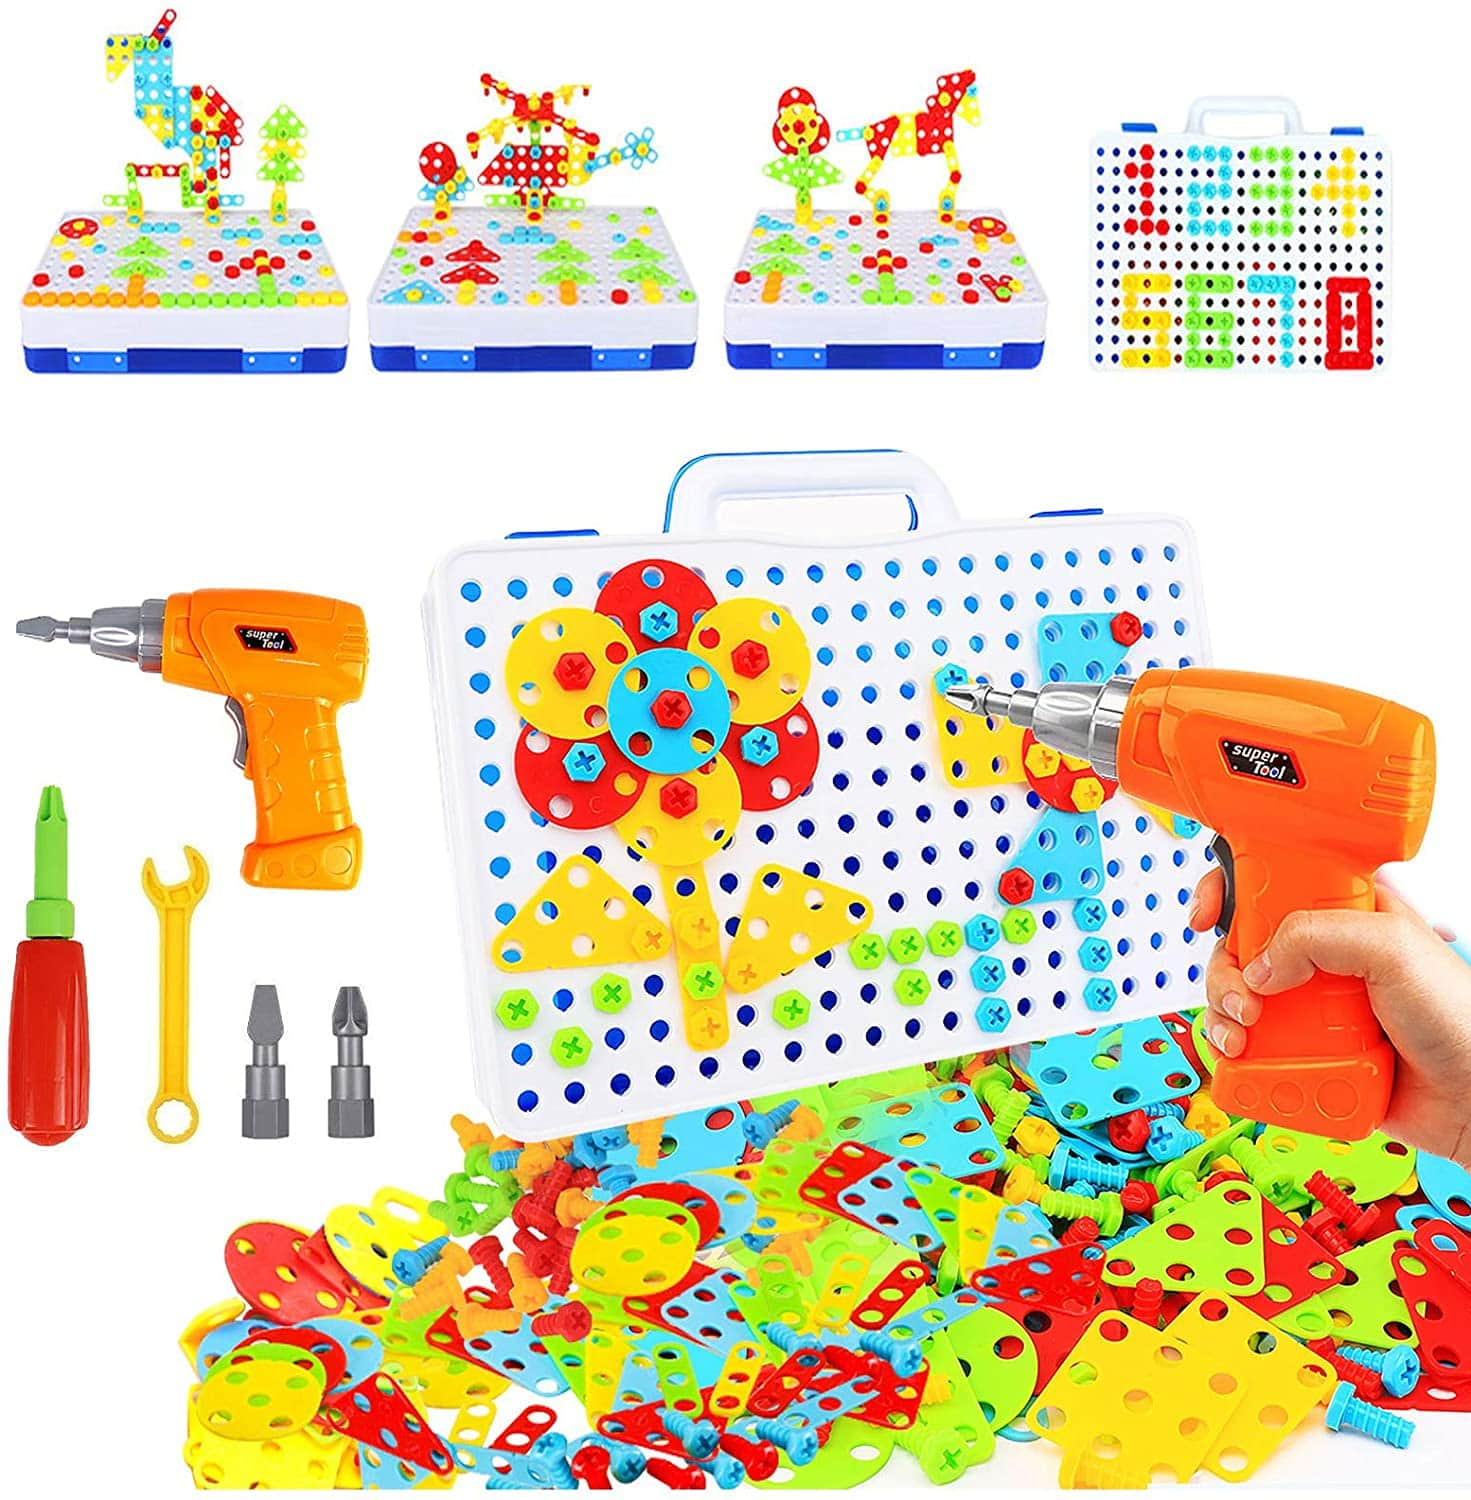 237 Pieces Electric DIY Drill Educational Set, STEM Learning Toys $16.49 at amazon 16.49